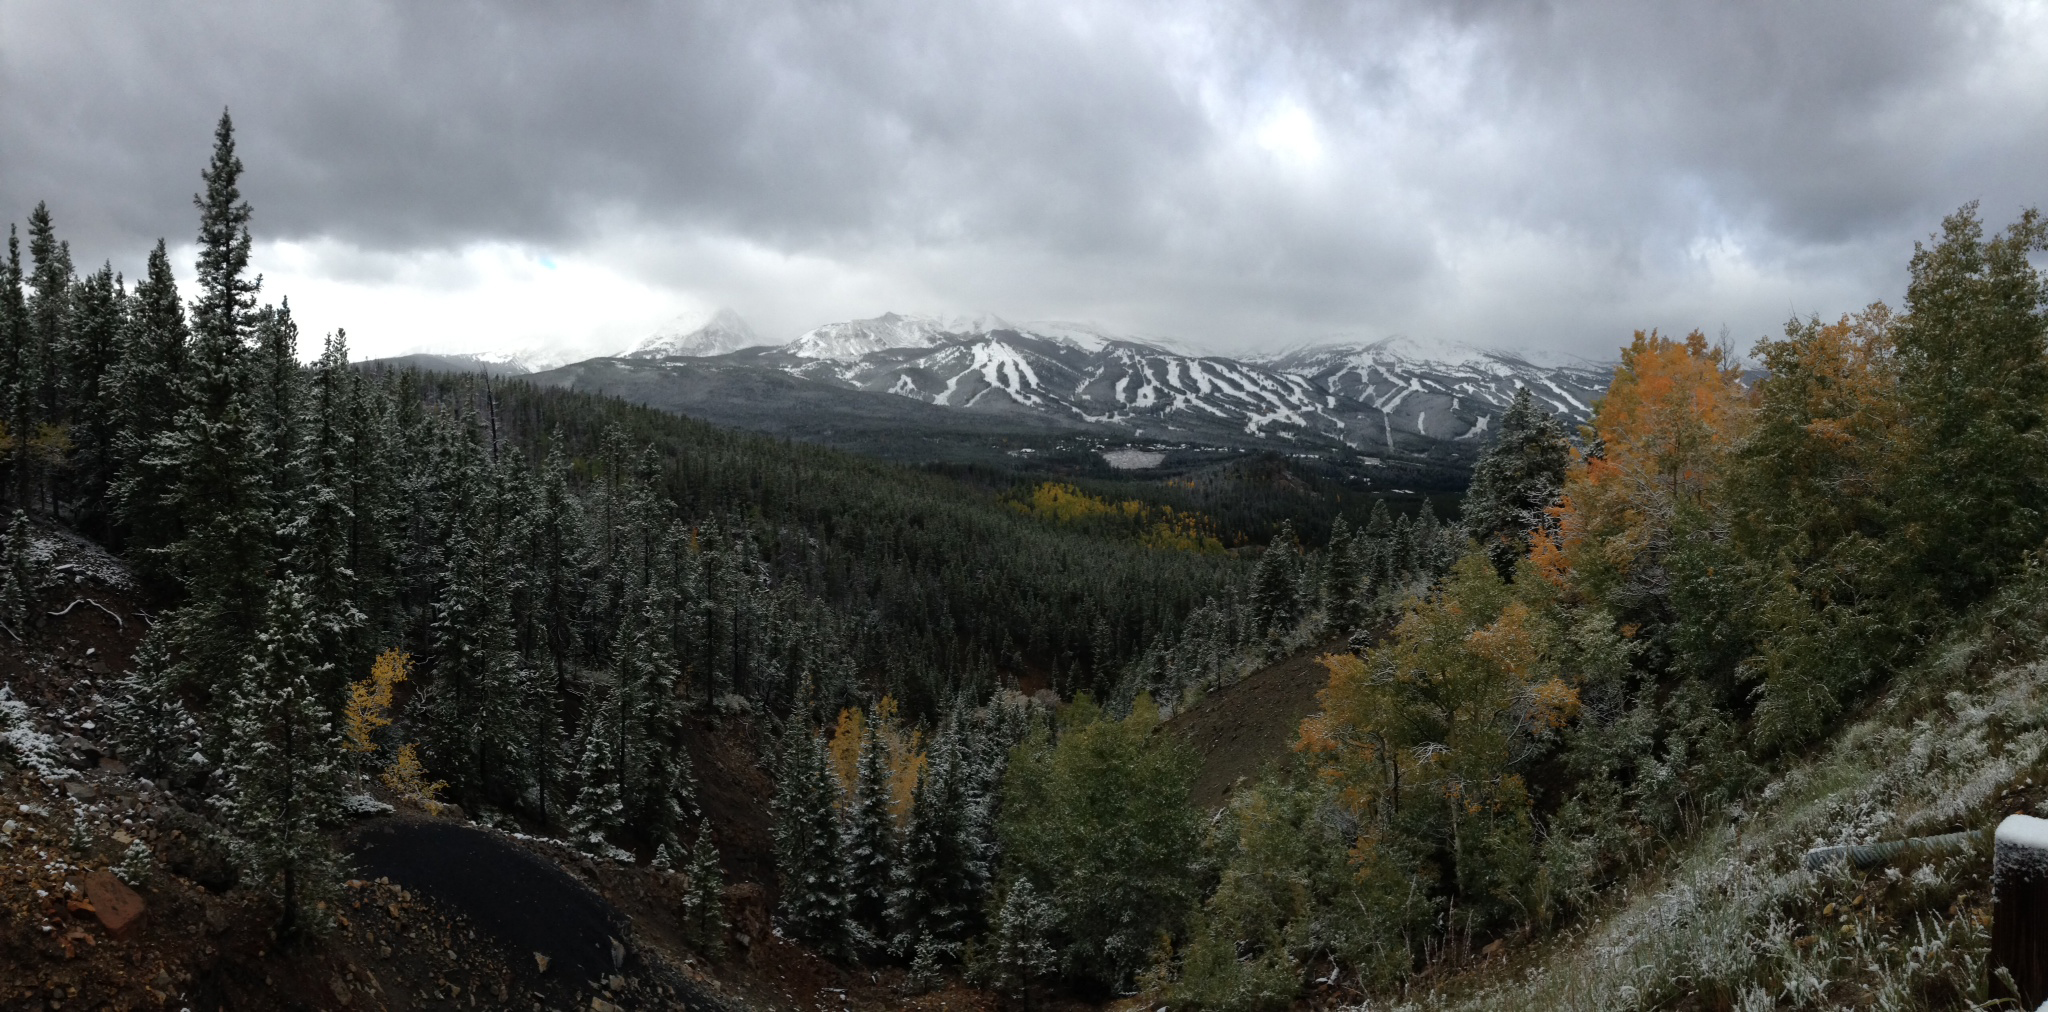 Breck with snow